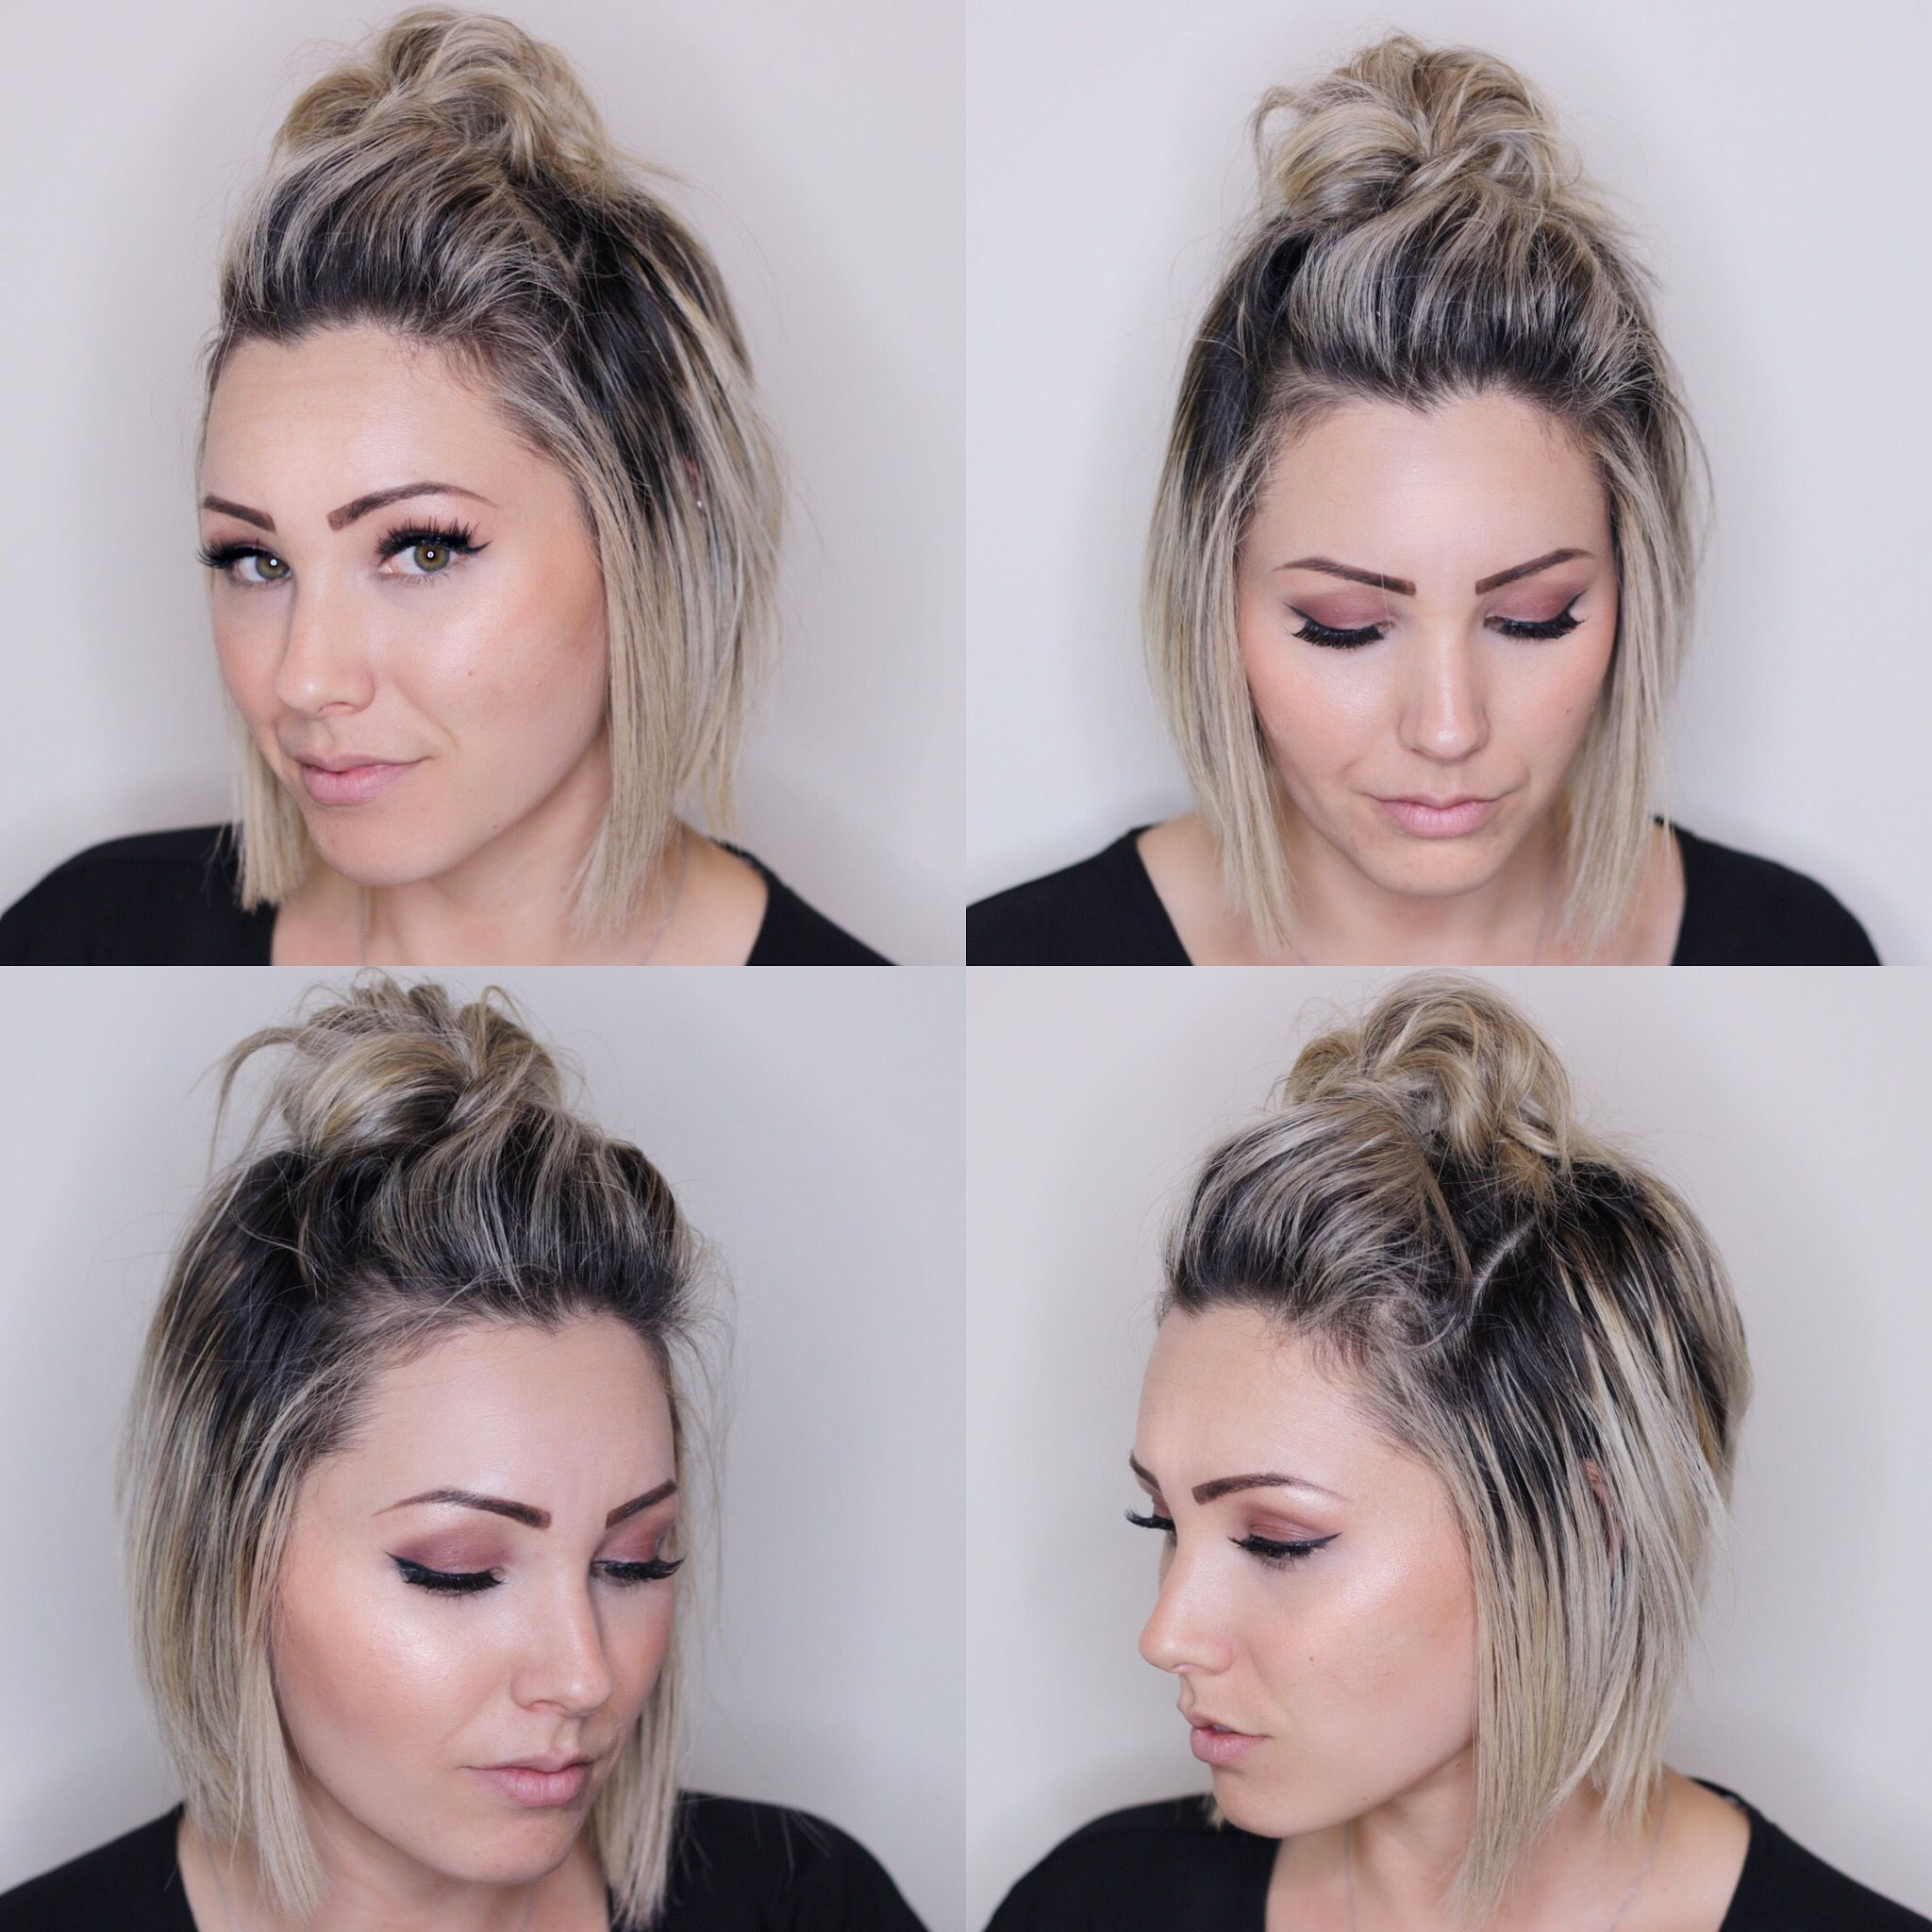 Hairstyles Short Hair Enchanting Top Knot For Short Hairshort Hairstylesoft Bob Haircut  H A I R